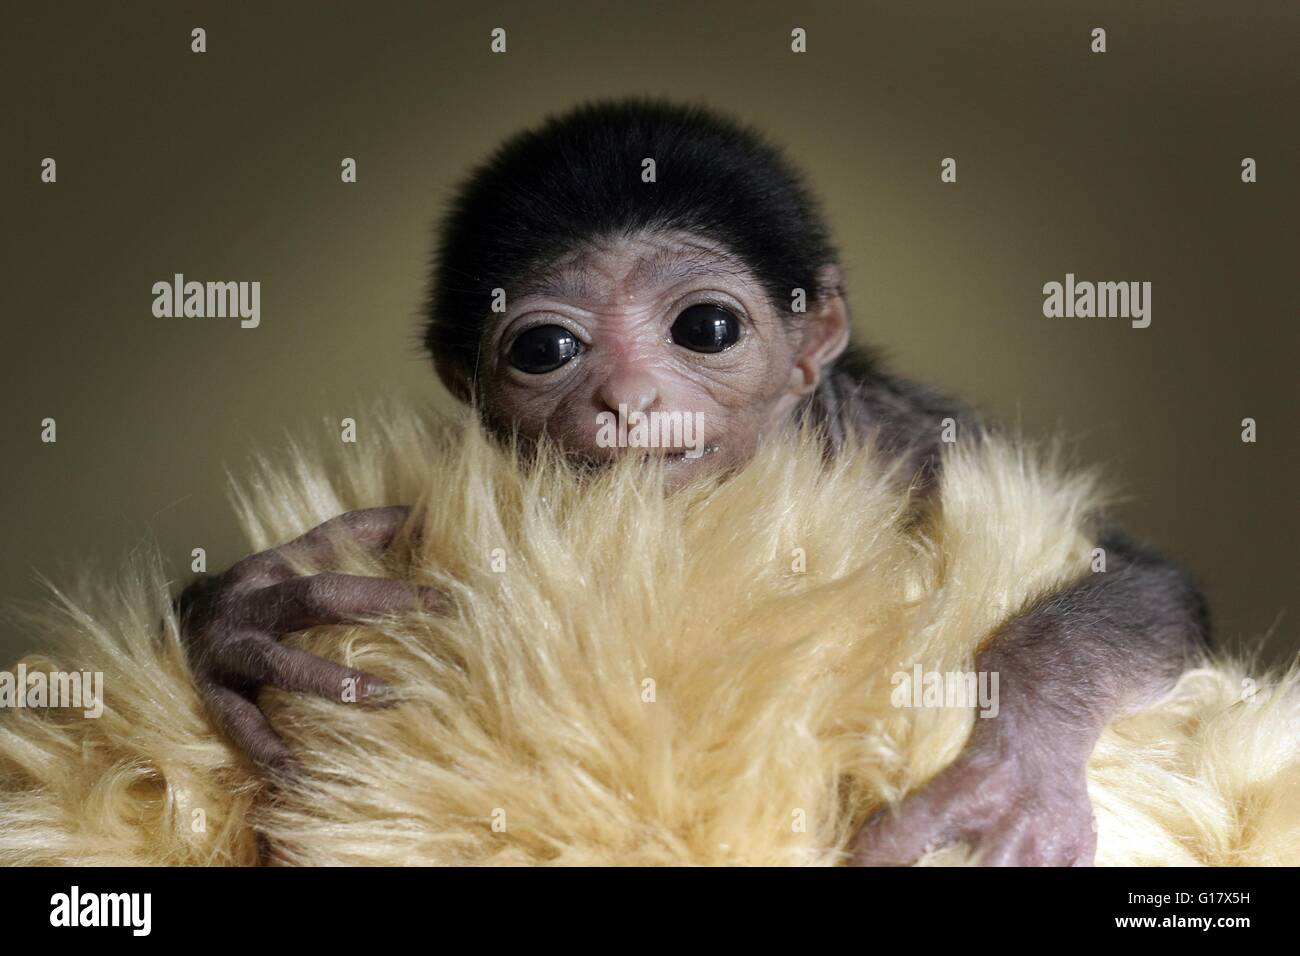 A baby Lar Gibbon wrapped in a fake fur to keep him warm. Stock Photo